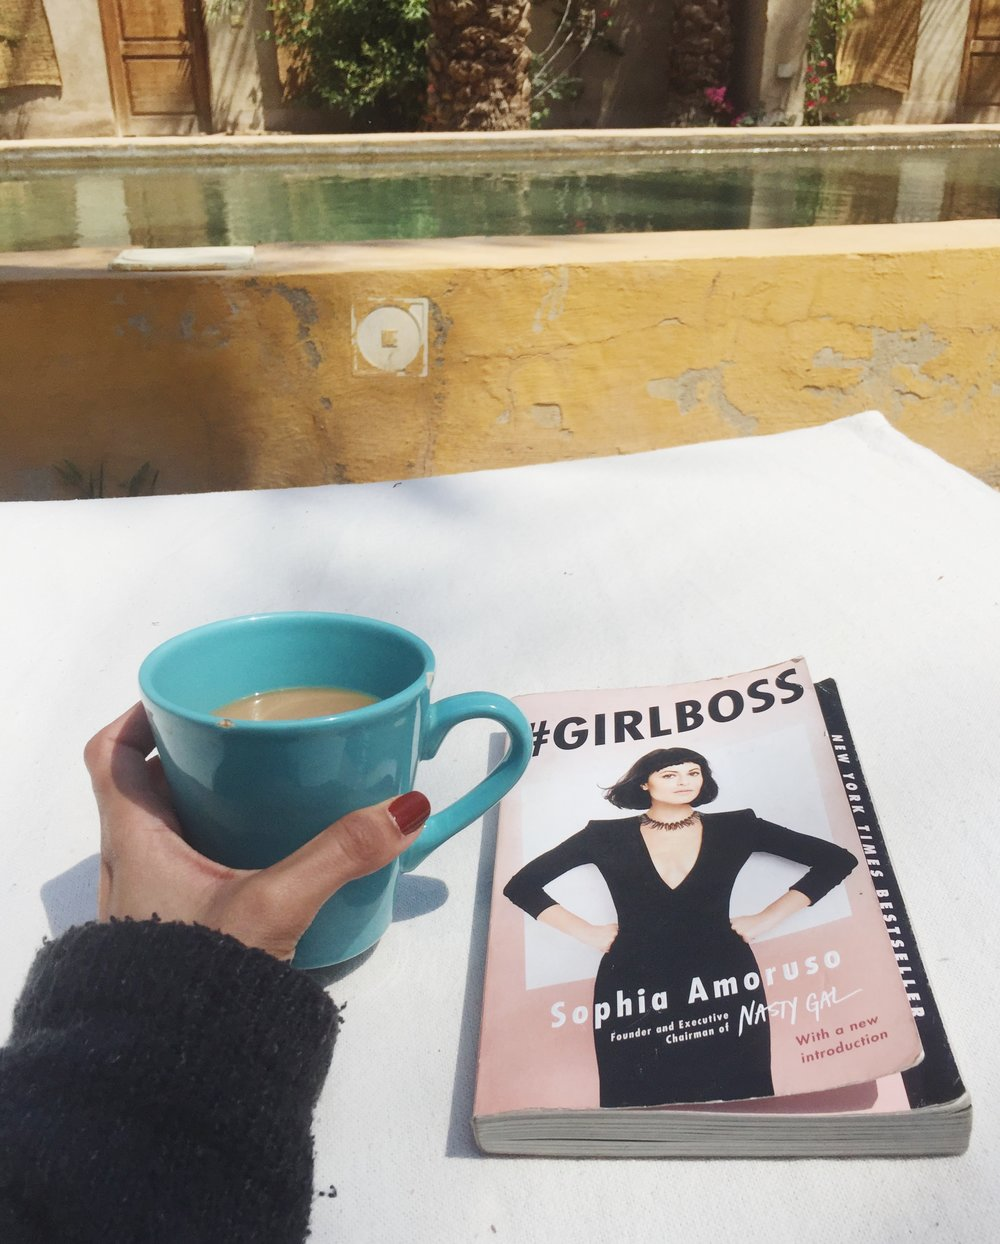 Current Read:  #GIRLBOSS  by Sophia Amoruso